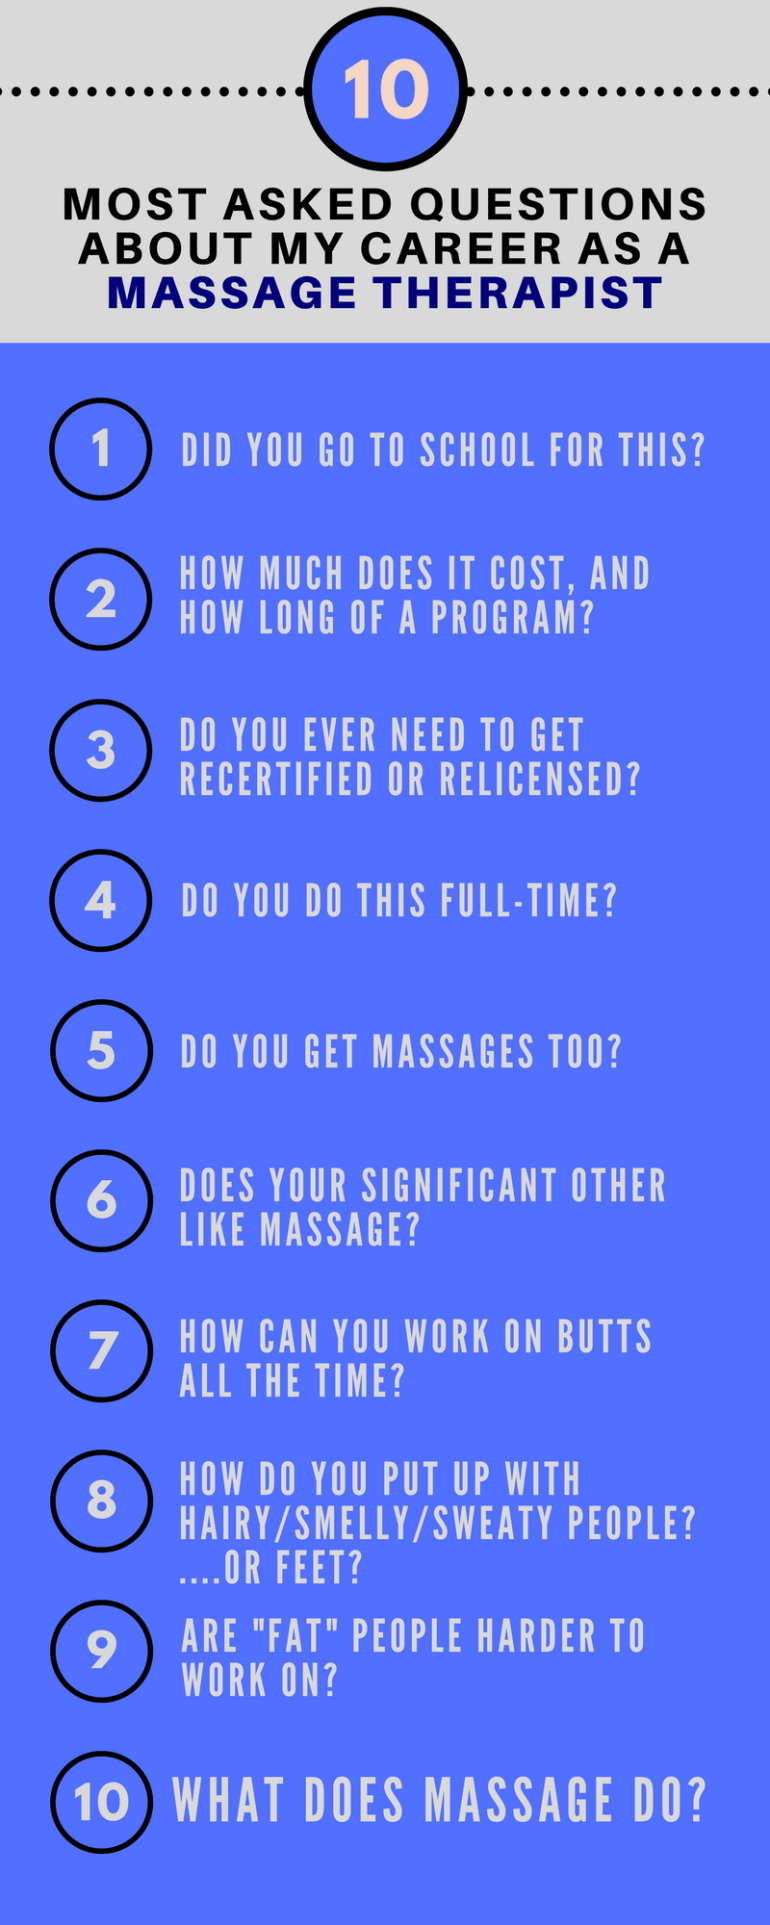 10 Most Asked Questions About My Career as a Massage Therapist